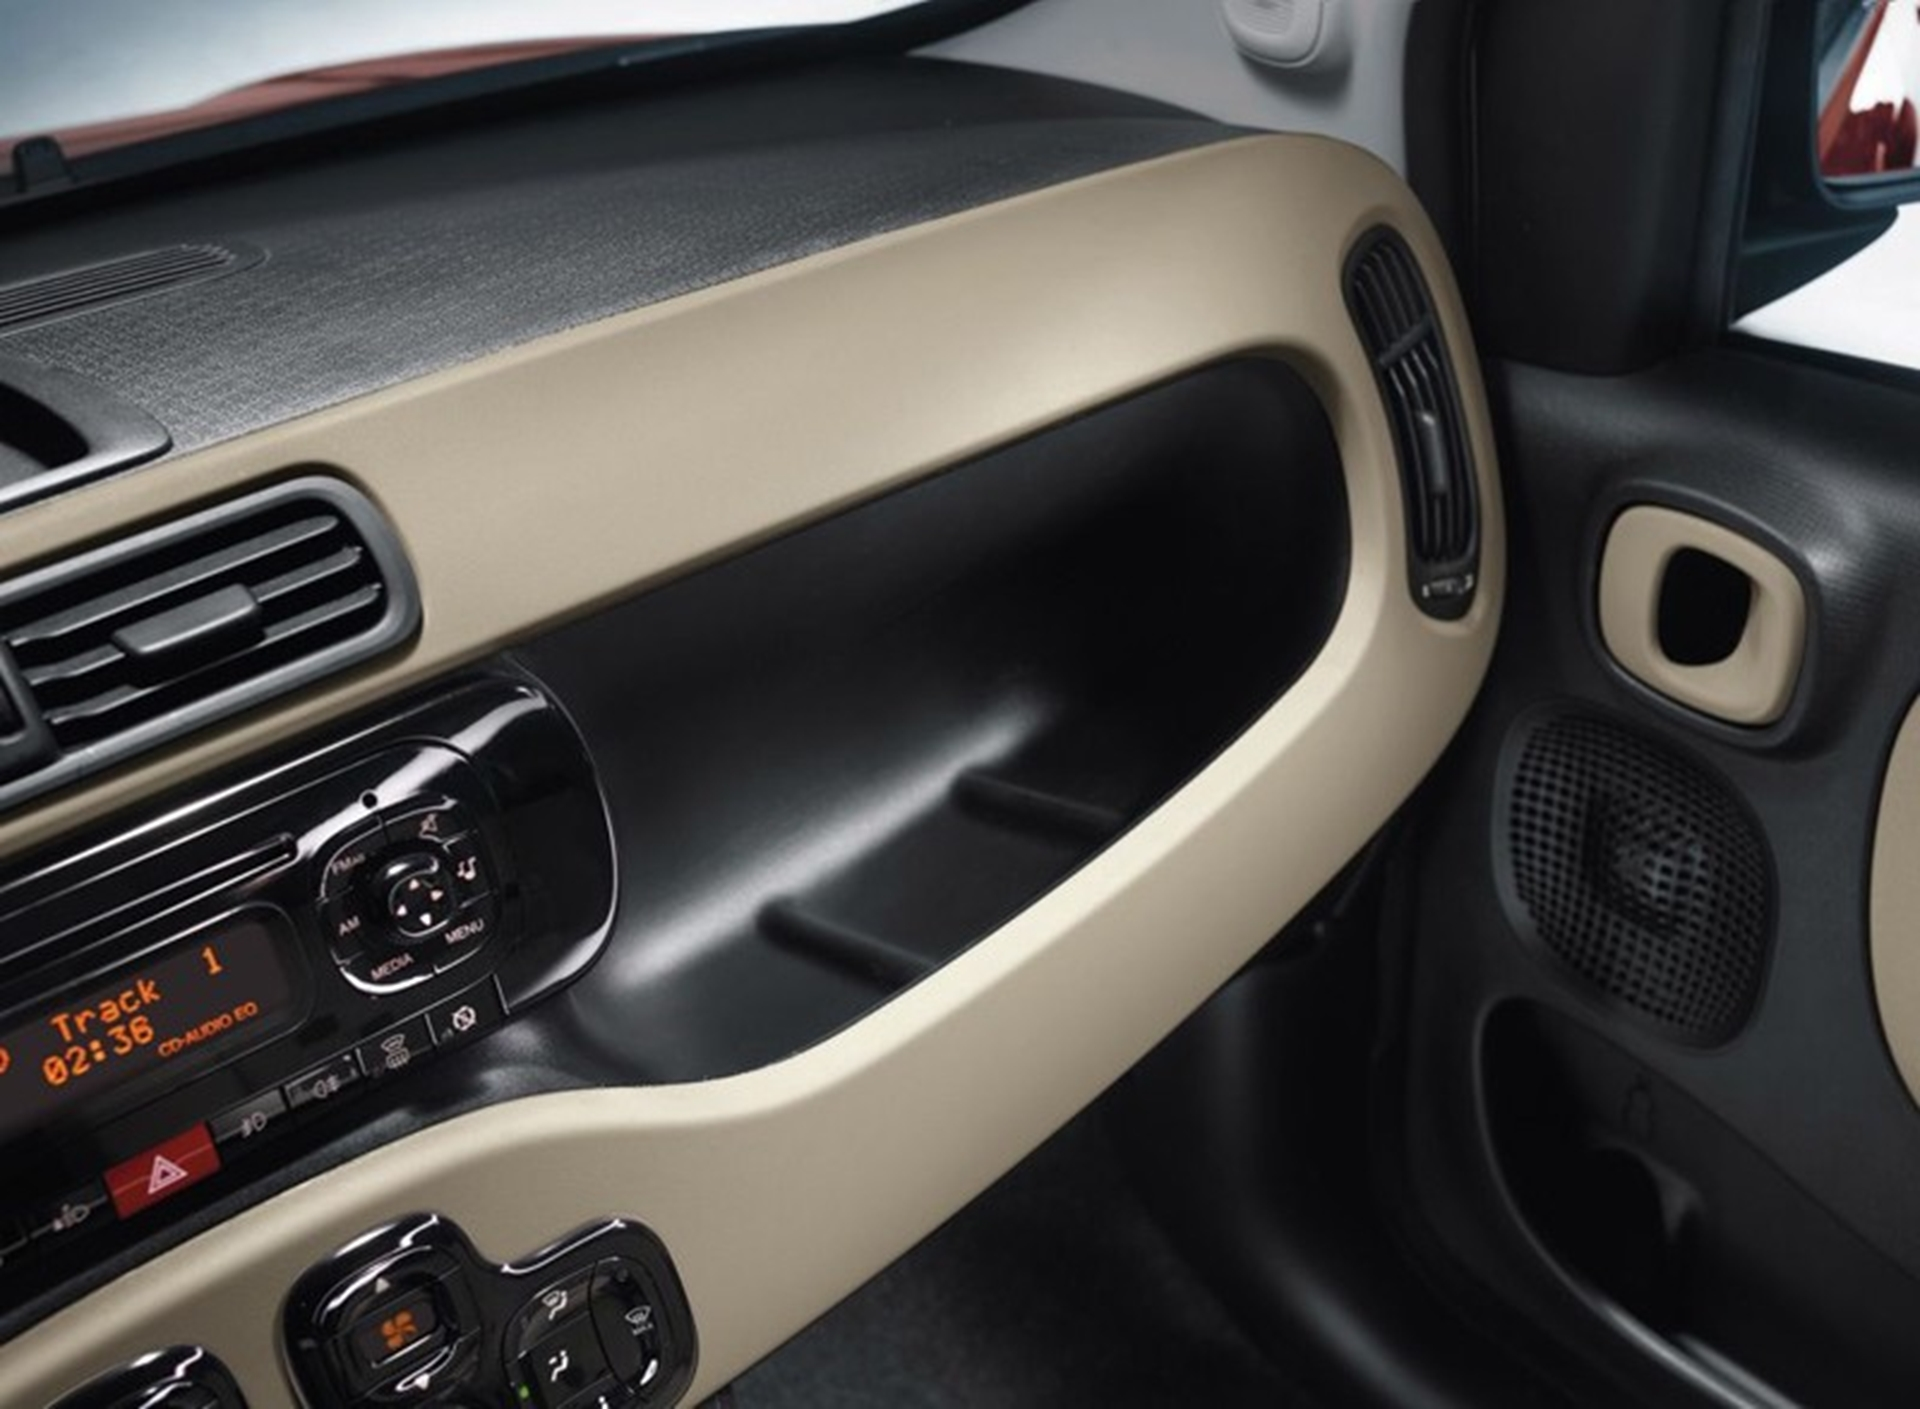 Fiat Panda Inside 2011 Dashboard